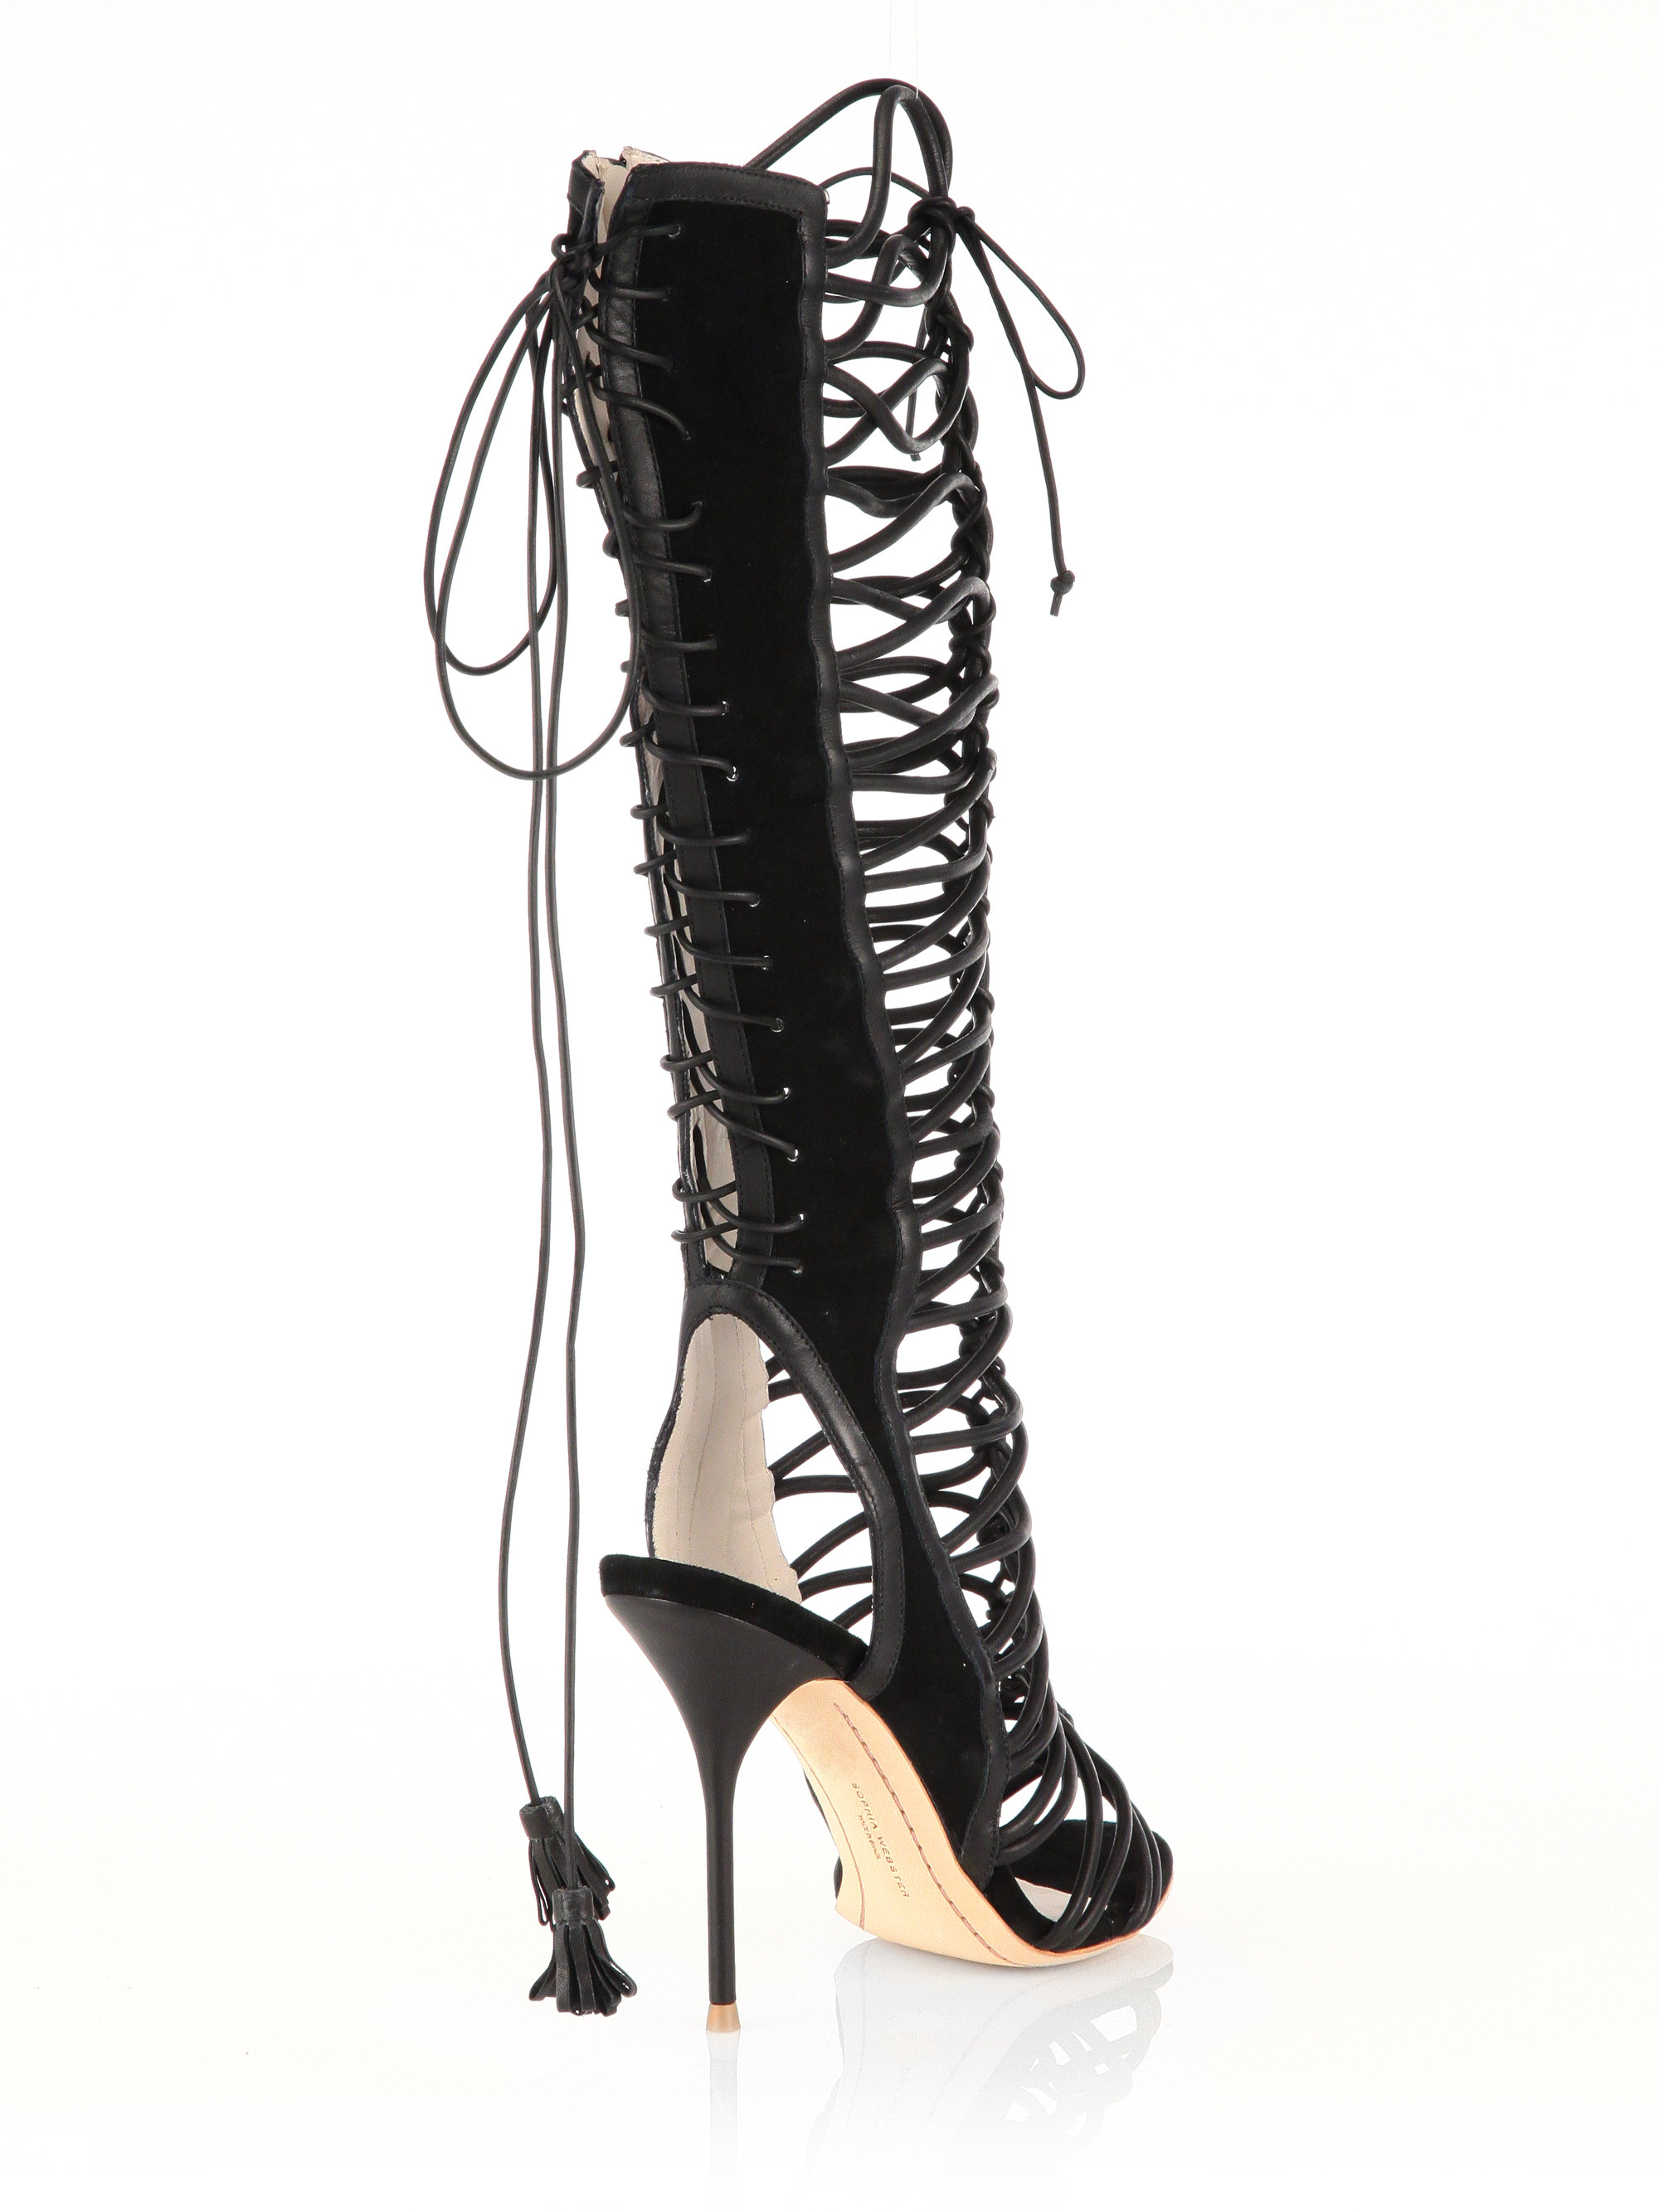 Sophia Webster Clementine Leather & Suede Lace-Up Sandal